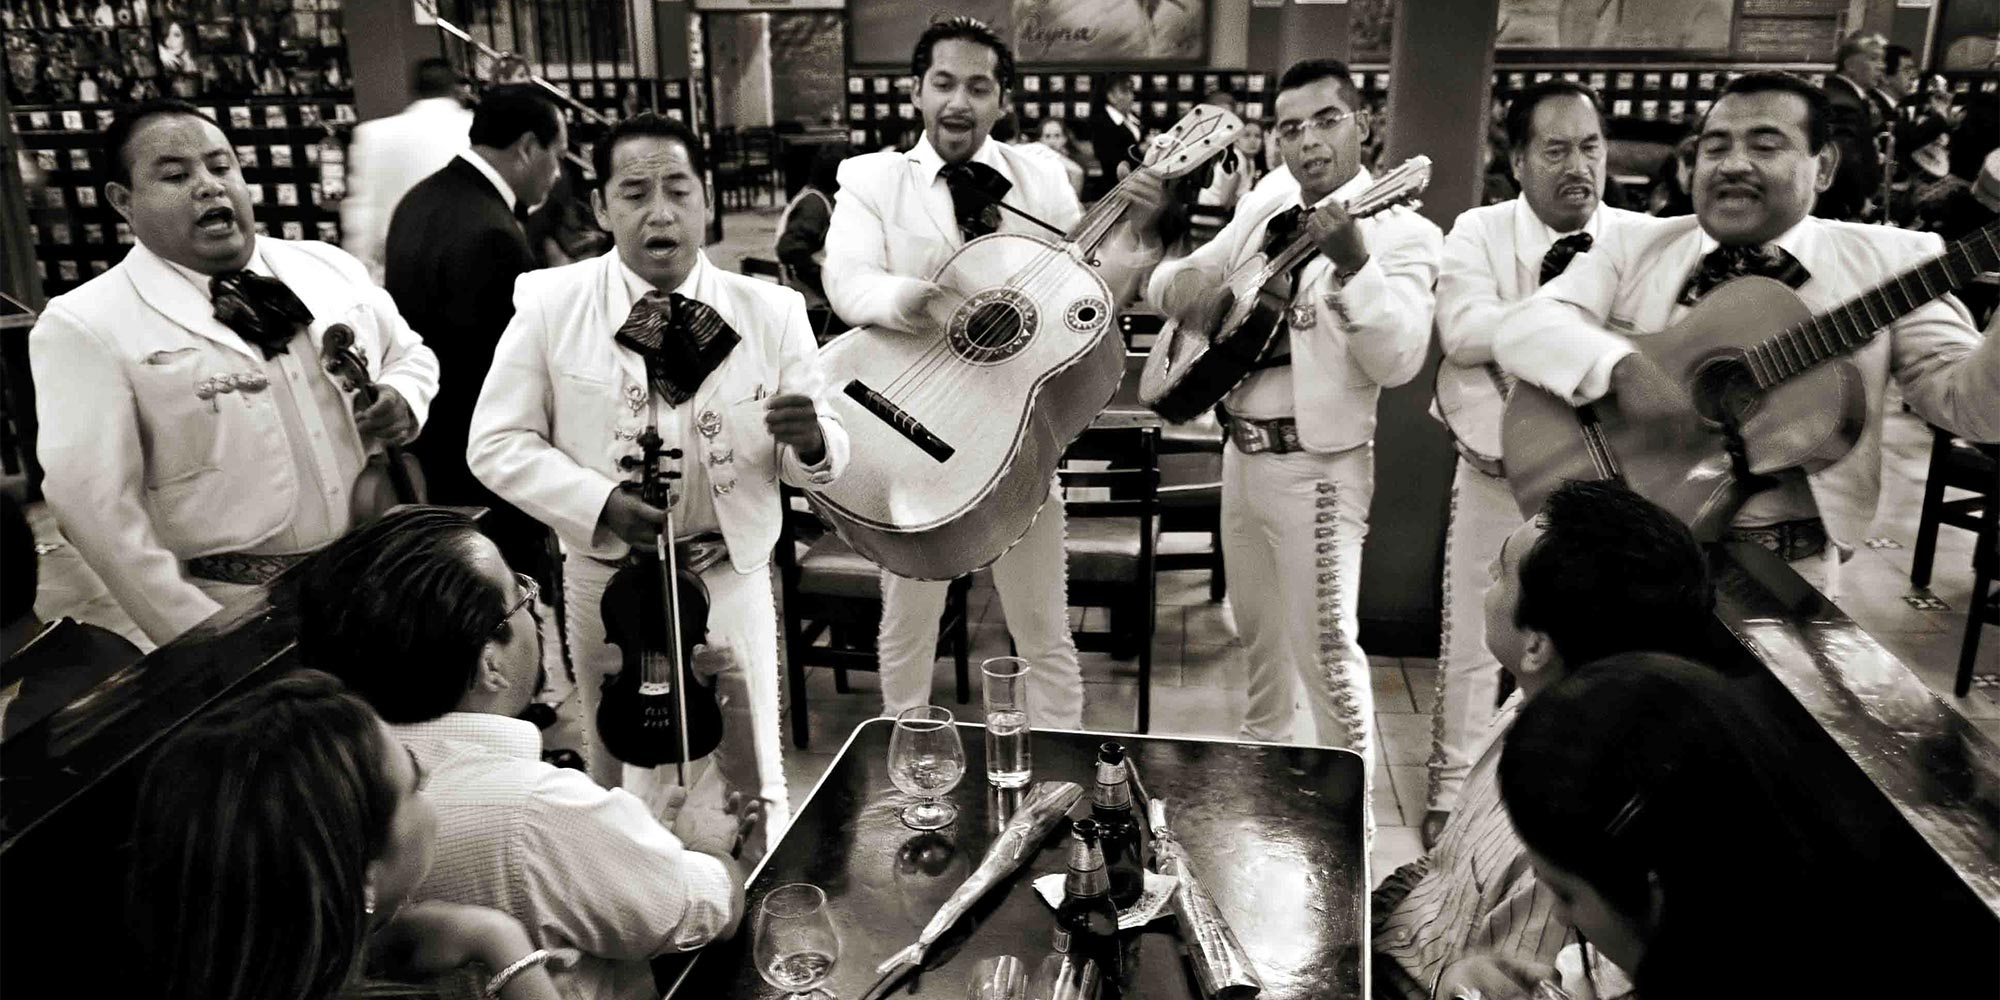 A mariachi band playing live music in Mexico City